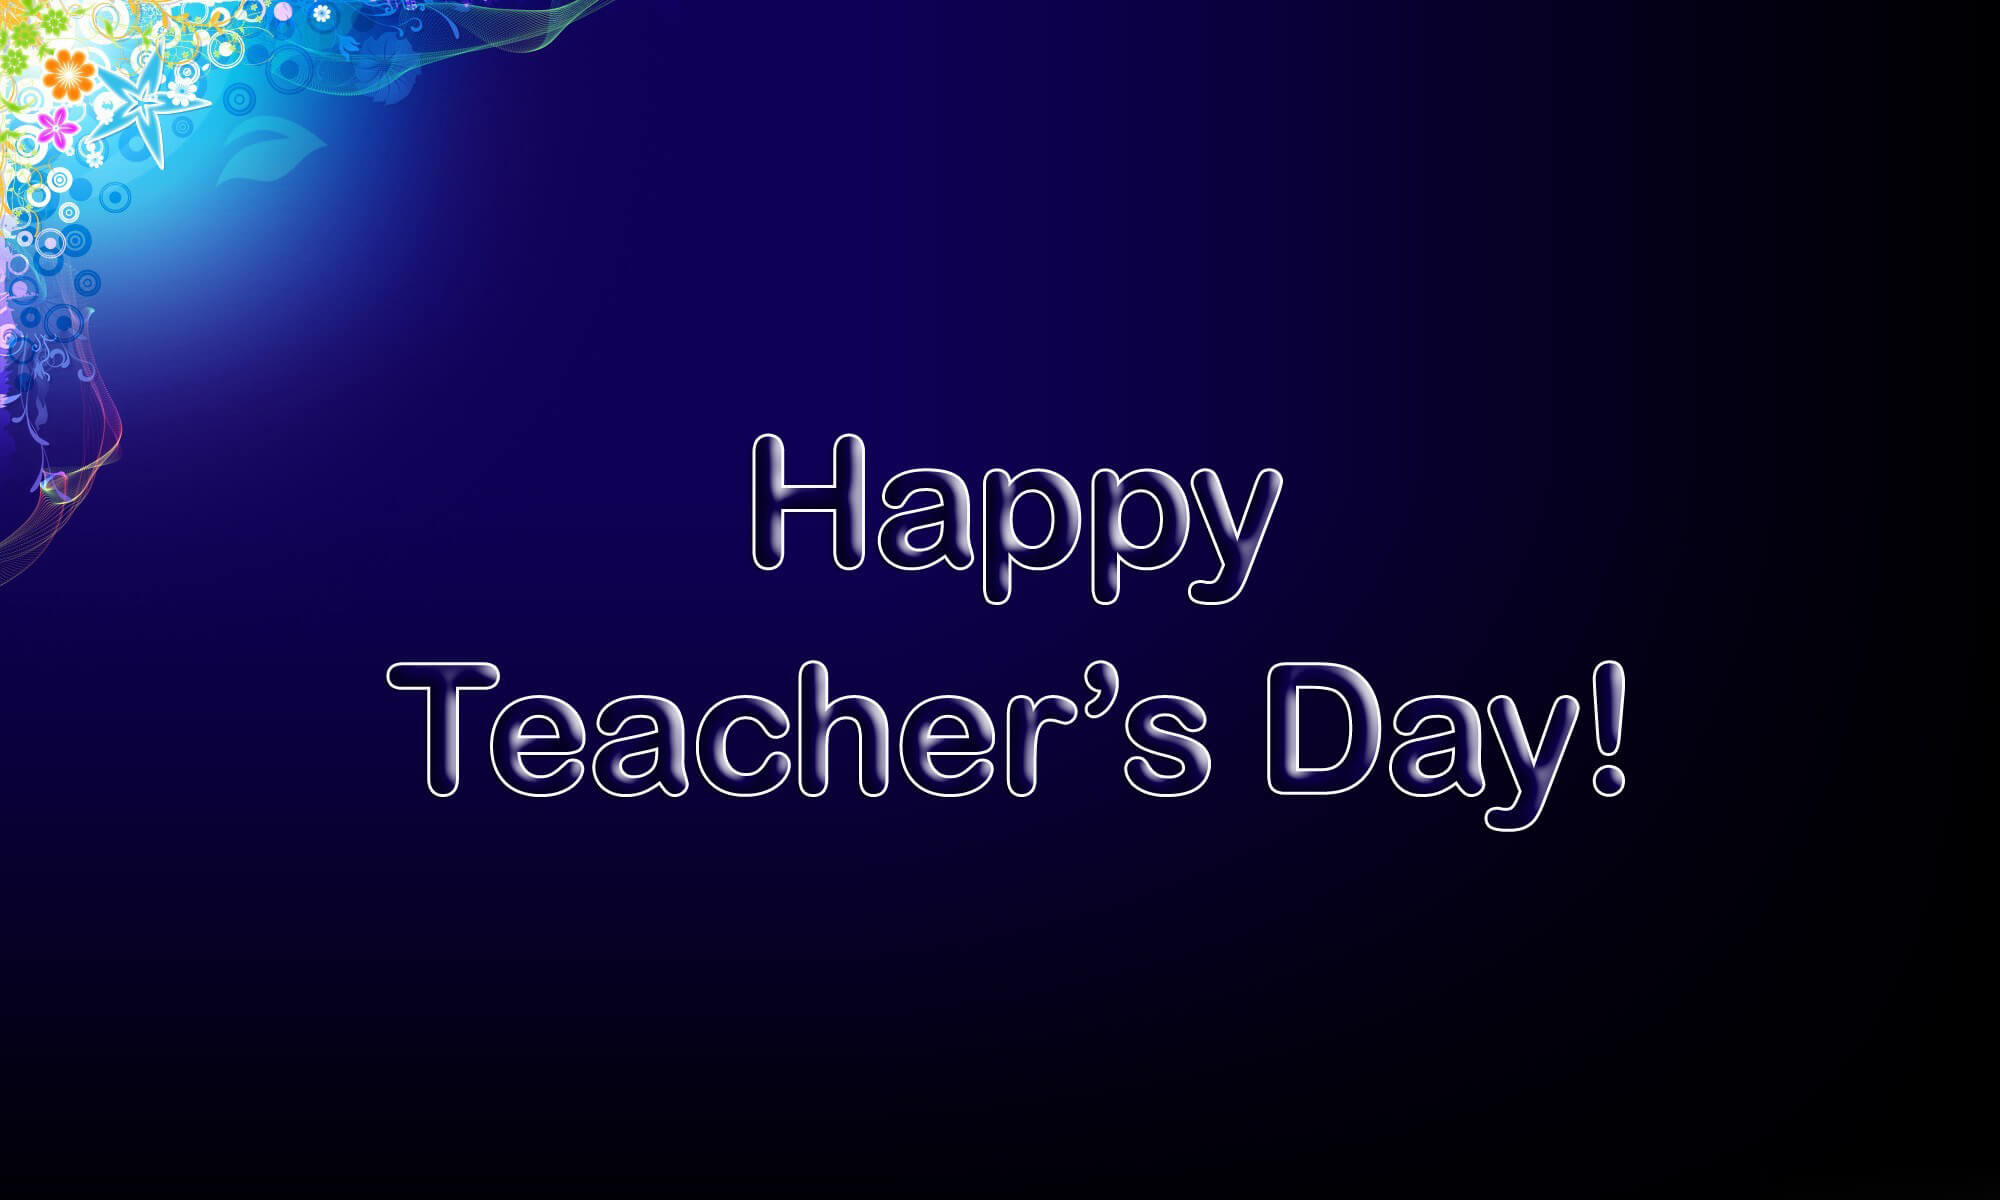 Happy teachers day best greetings hd wallpaper altavistaventures Choice Image